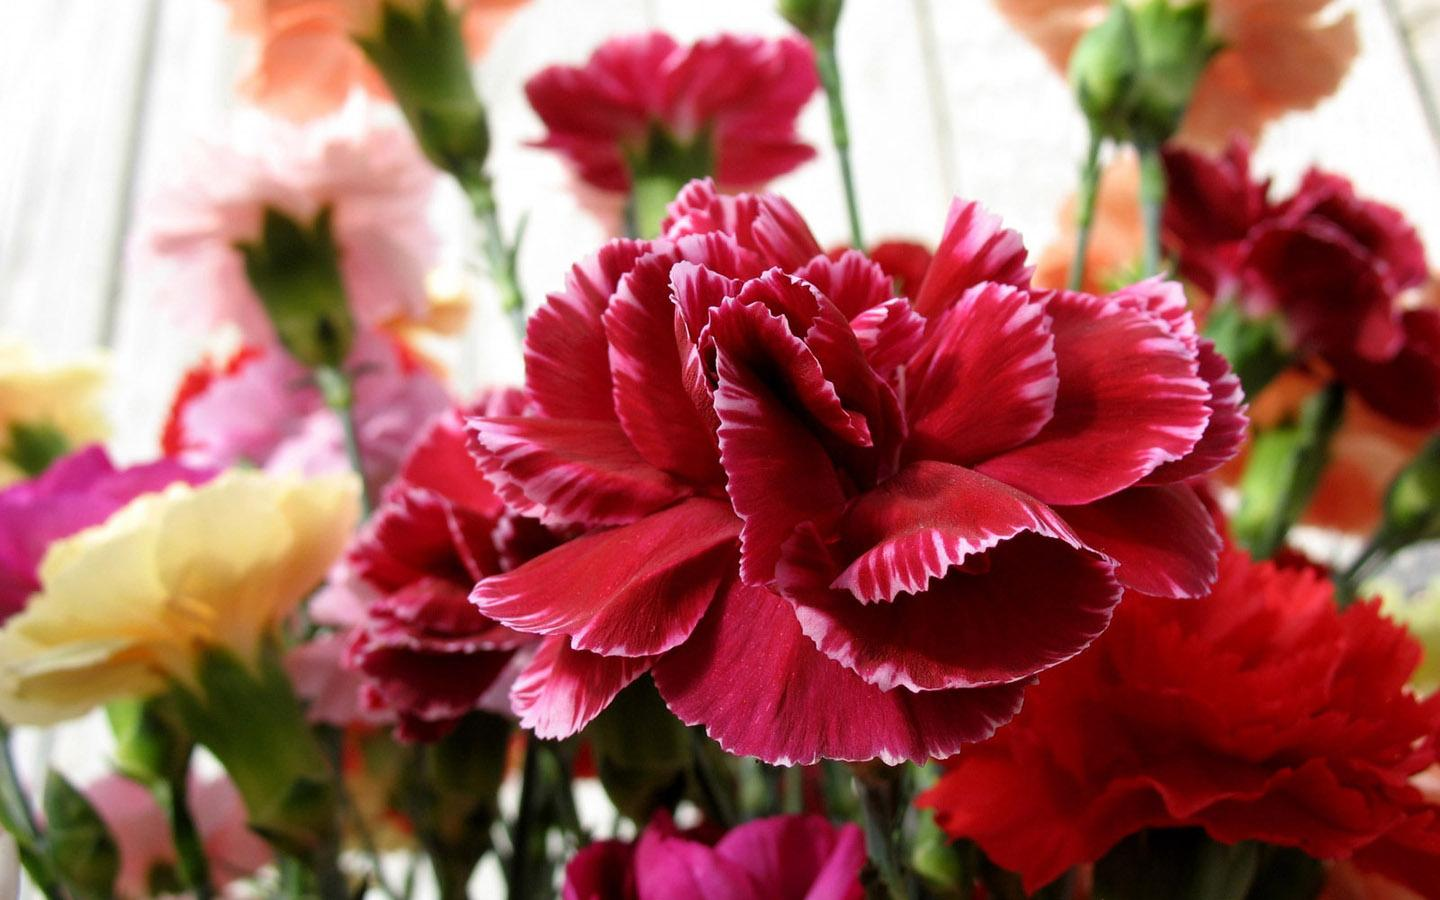 20 beautiful flowers you might fall in love with carnations flowers images most beautiful flowers in the world 12 dahlia flower izmirmasajfo